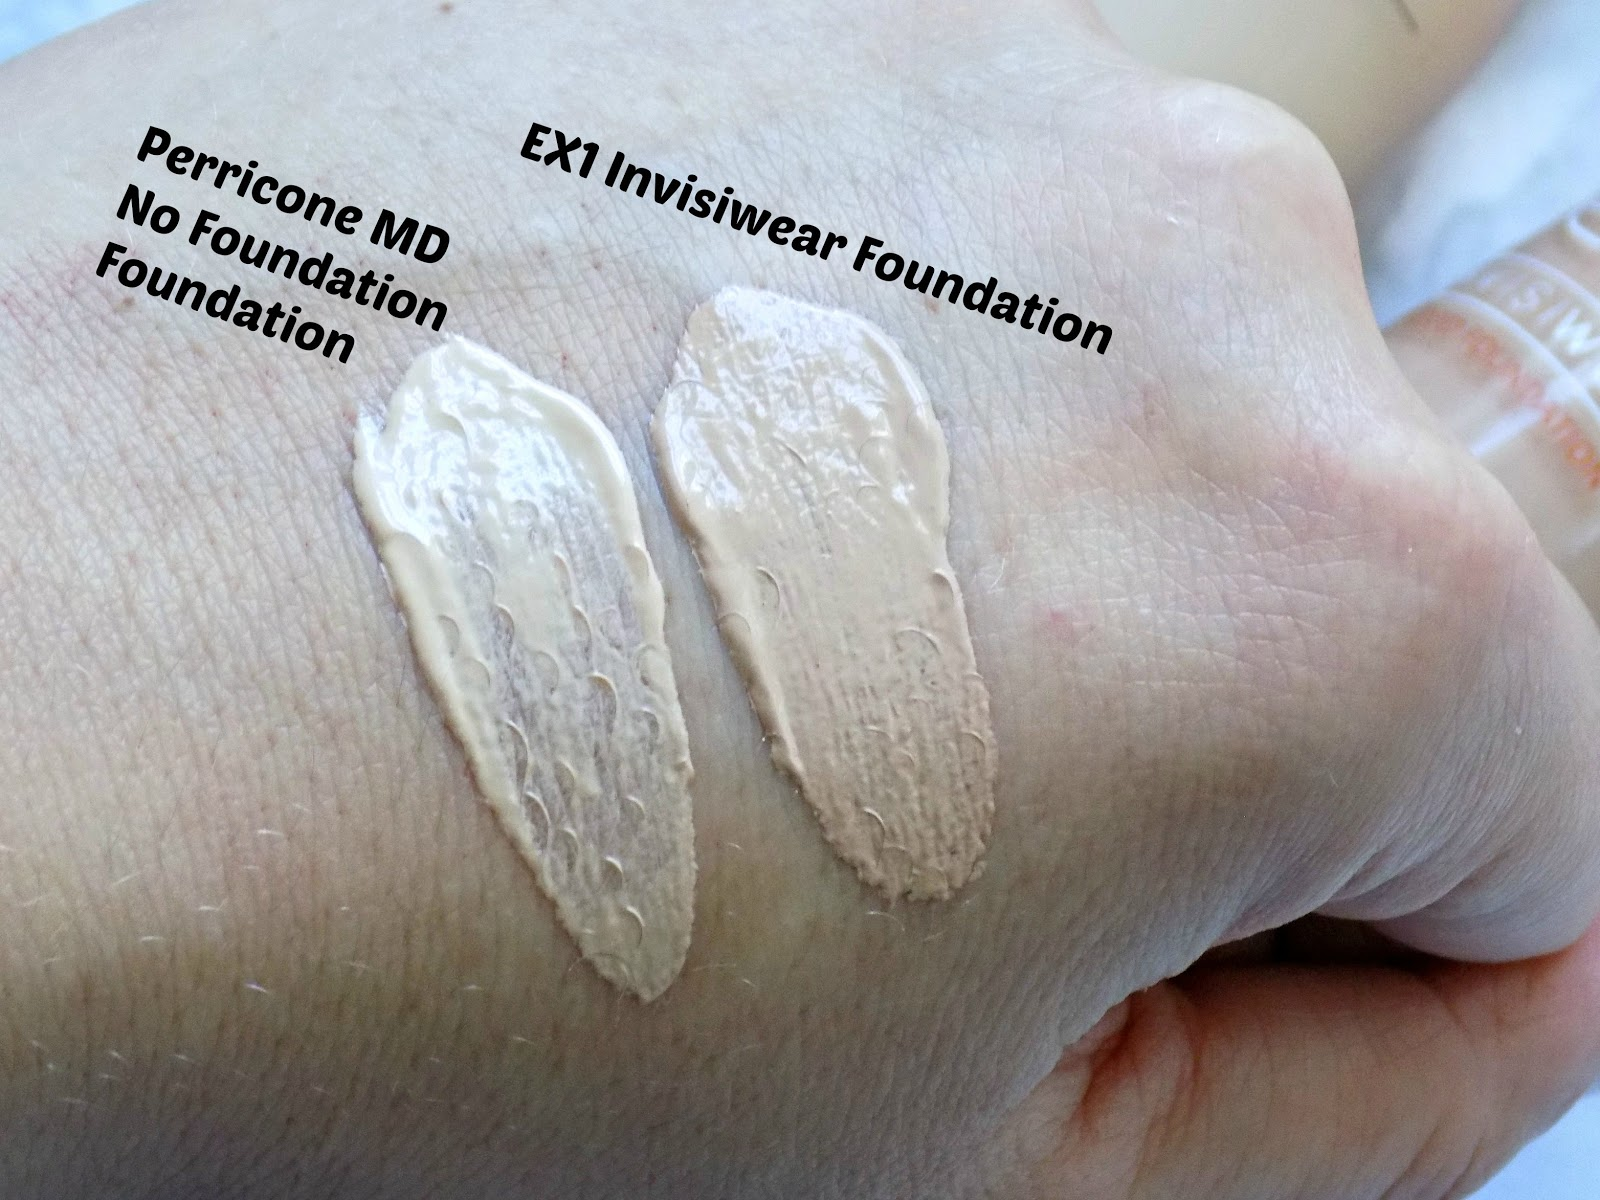 Perricone MD No Foundation Foundation and EX1 Invisiwear Foundation swatches